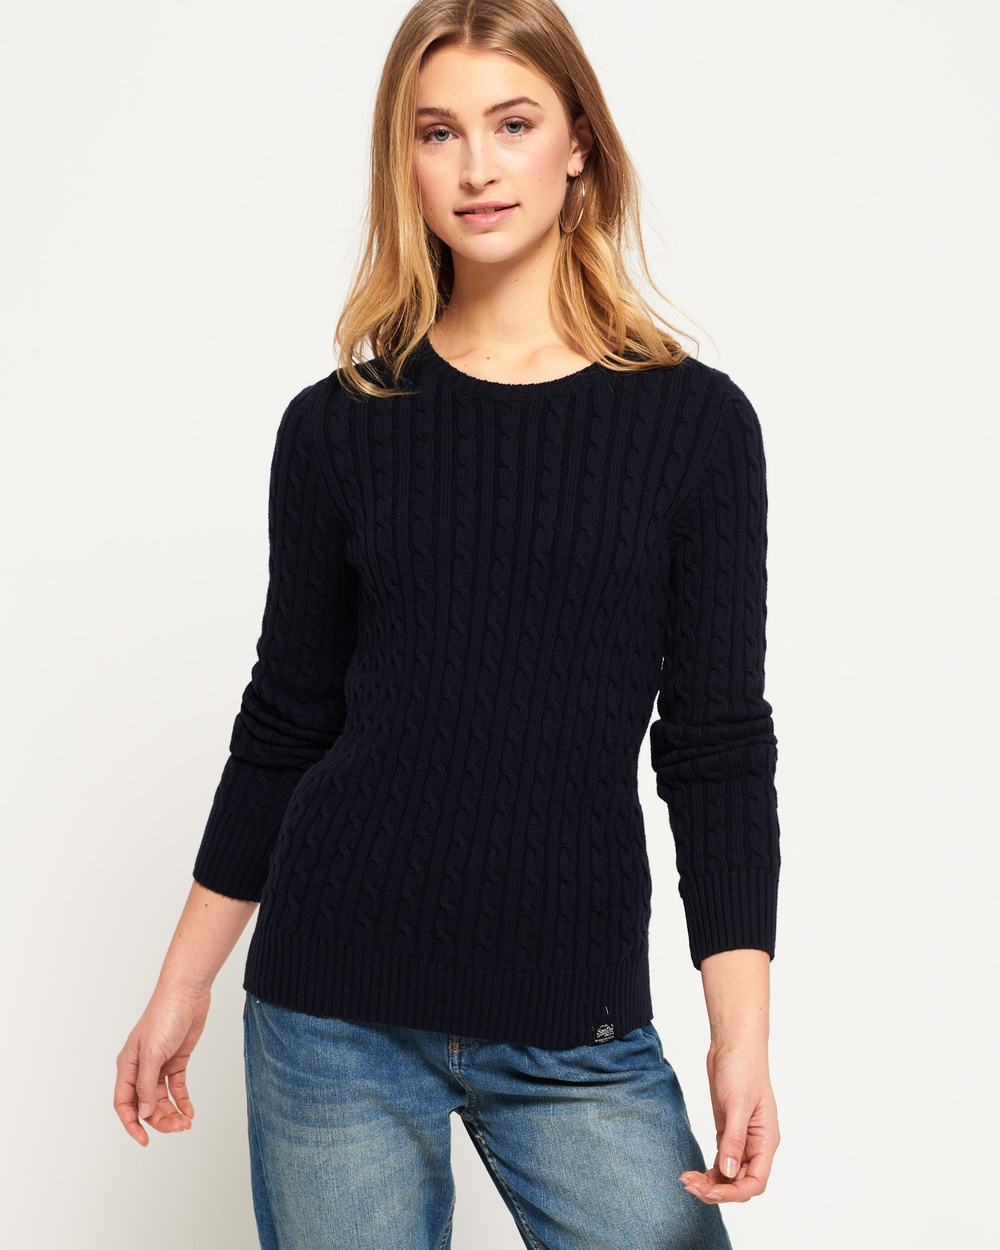 Photo of Superdry Superdry Croyde Cable Knit Jumper Tops Marina Navy Croyde Cable Knit Jumper - Superdry women's Croyde cable knit jumper. This cable knit jumper features a classic crew neck and ribbed hems and cuffs. This jumper is finished with a Vintage Superdry logo tab on the hem and a Superdry NYC logo badge on the sleeve. Model wears: 10/Small Model height: 5' 9